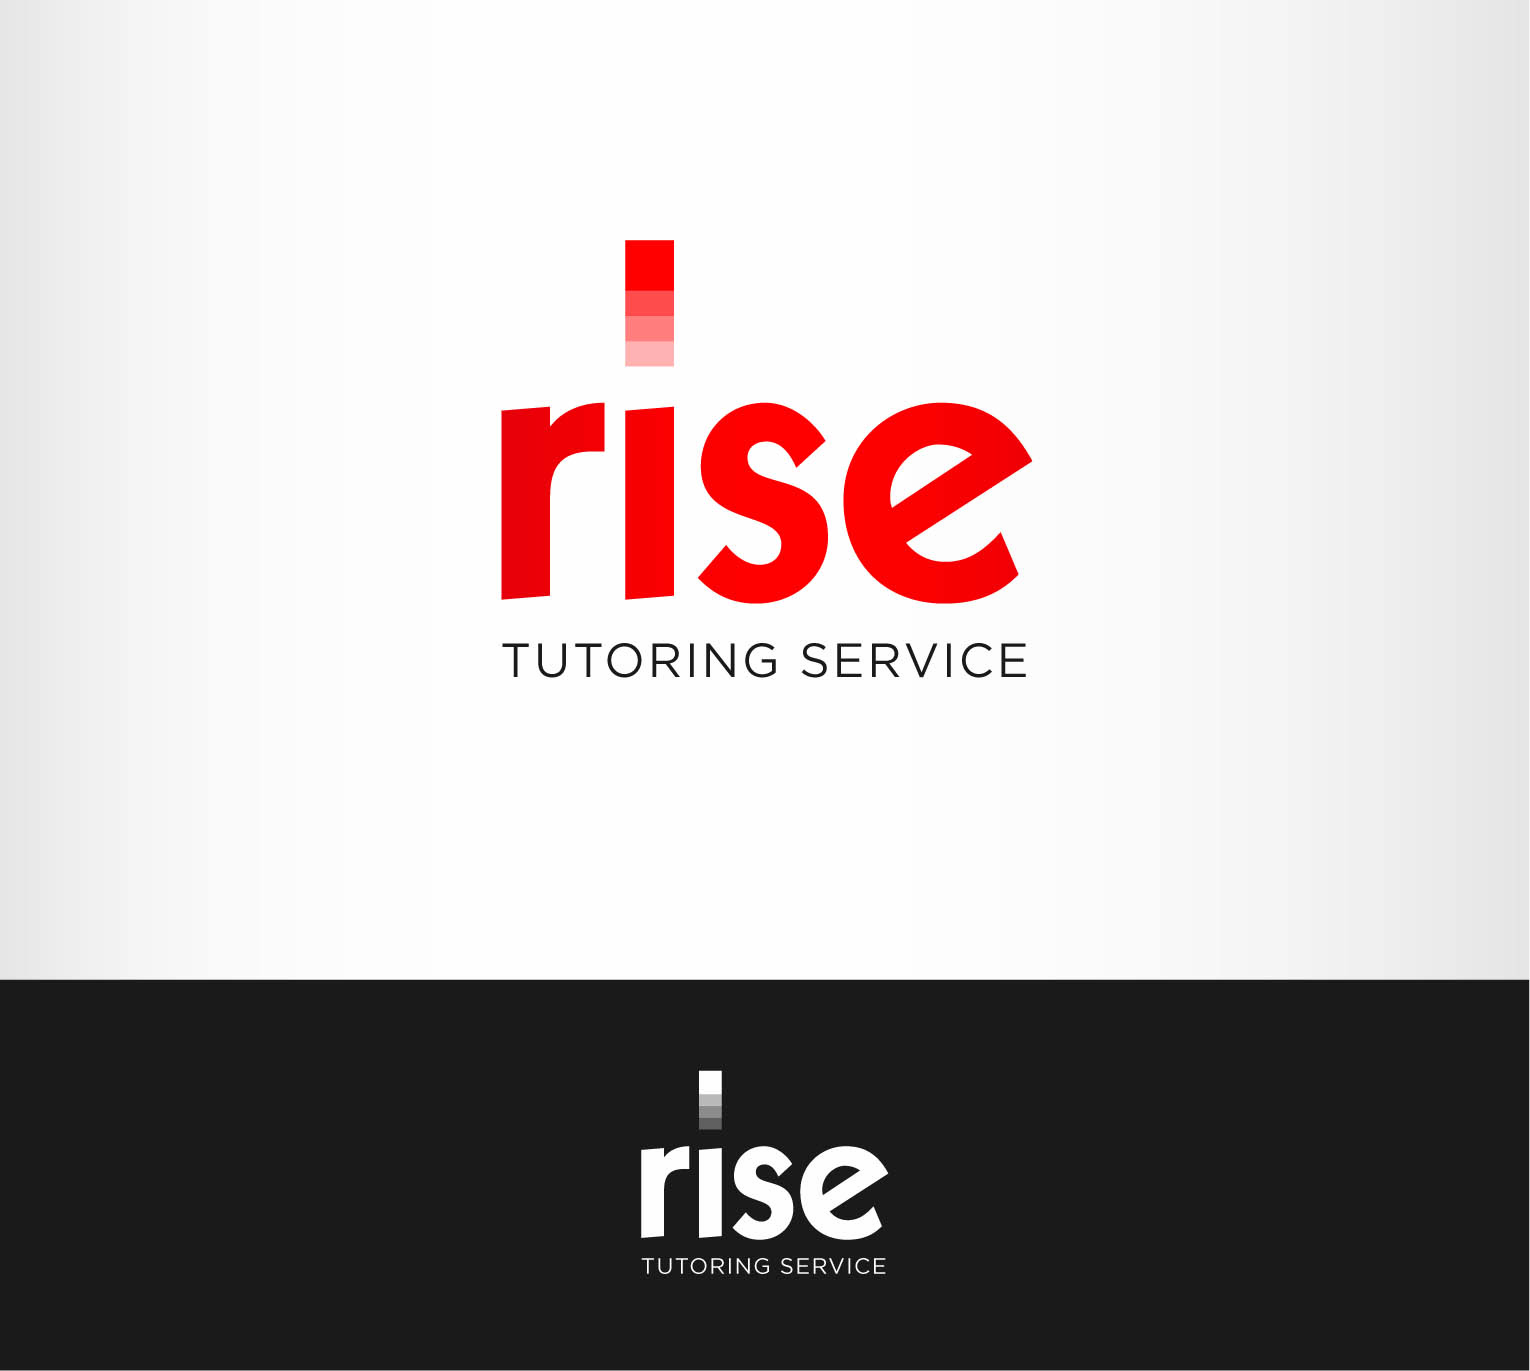 Logo Design by Andrés González - Entry No. 101 in the Logo Design Contest Imaginative Logo Design for Rise Tutoring Service.